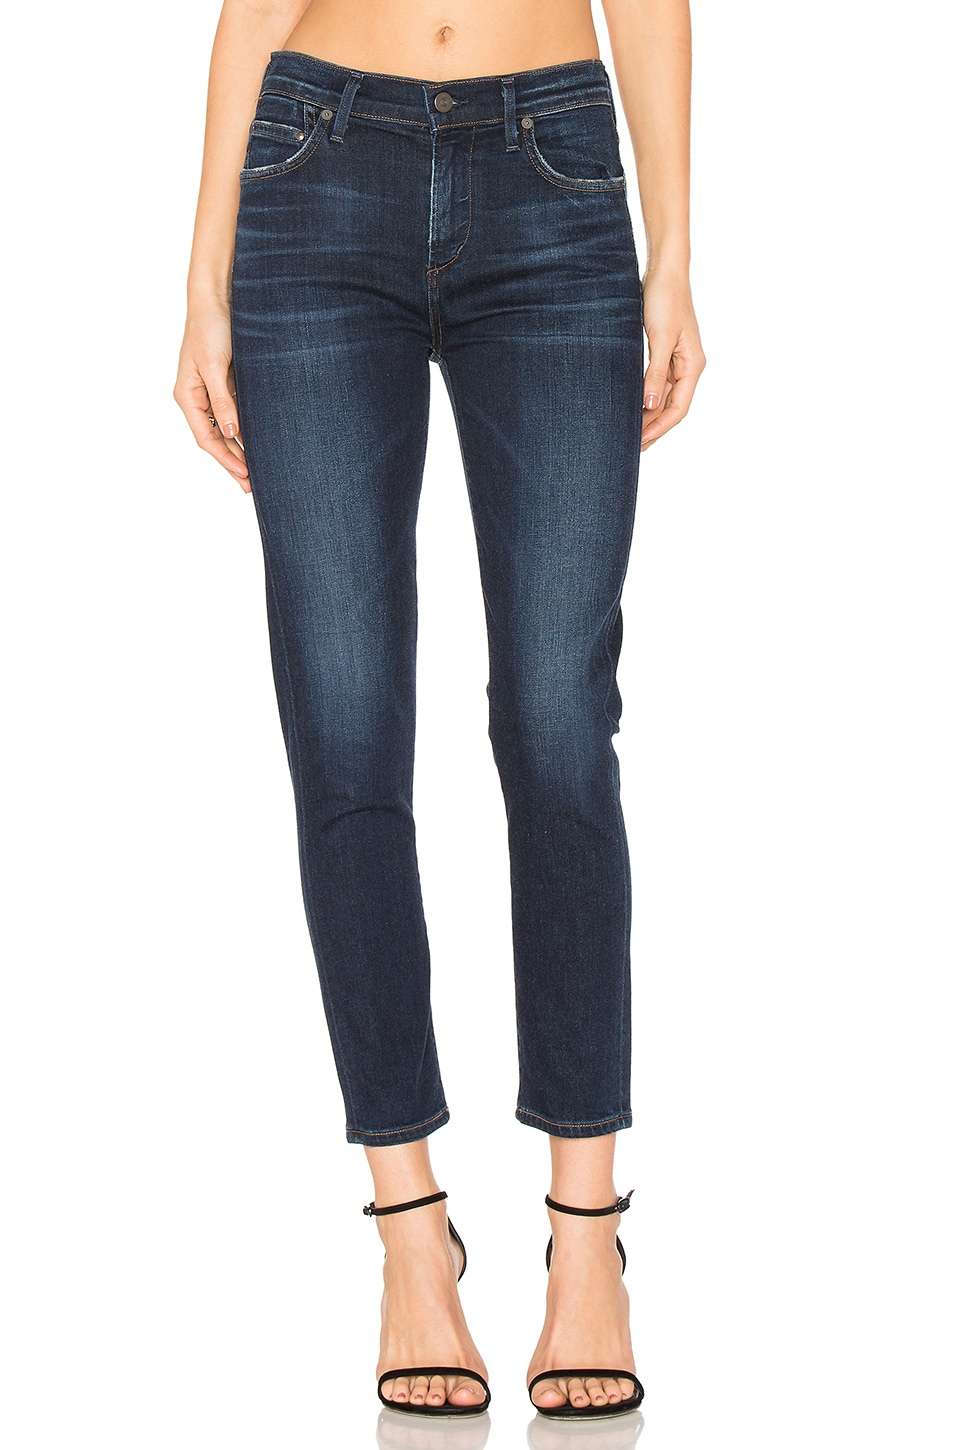 Citizens of Humanity Rocket High Rise Crop Skinny in Starlite